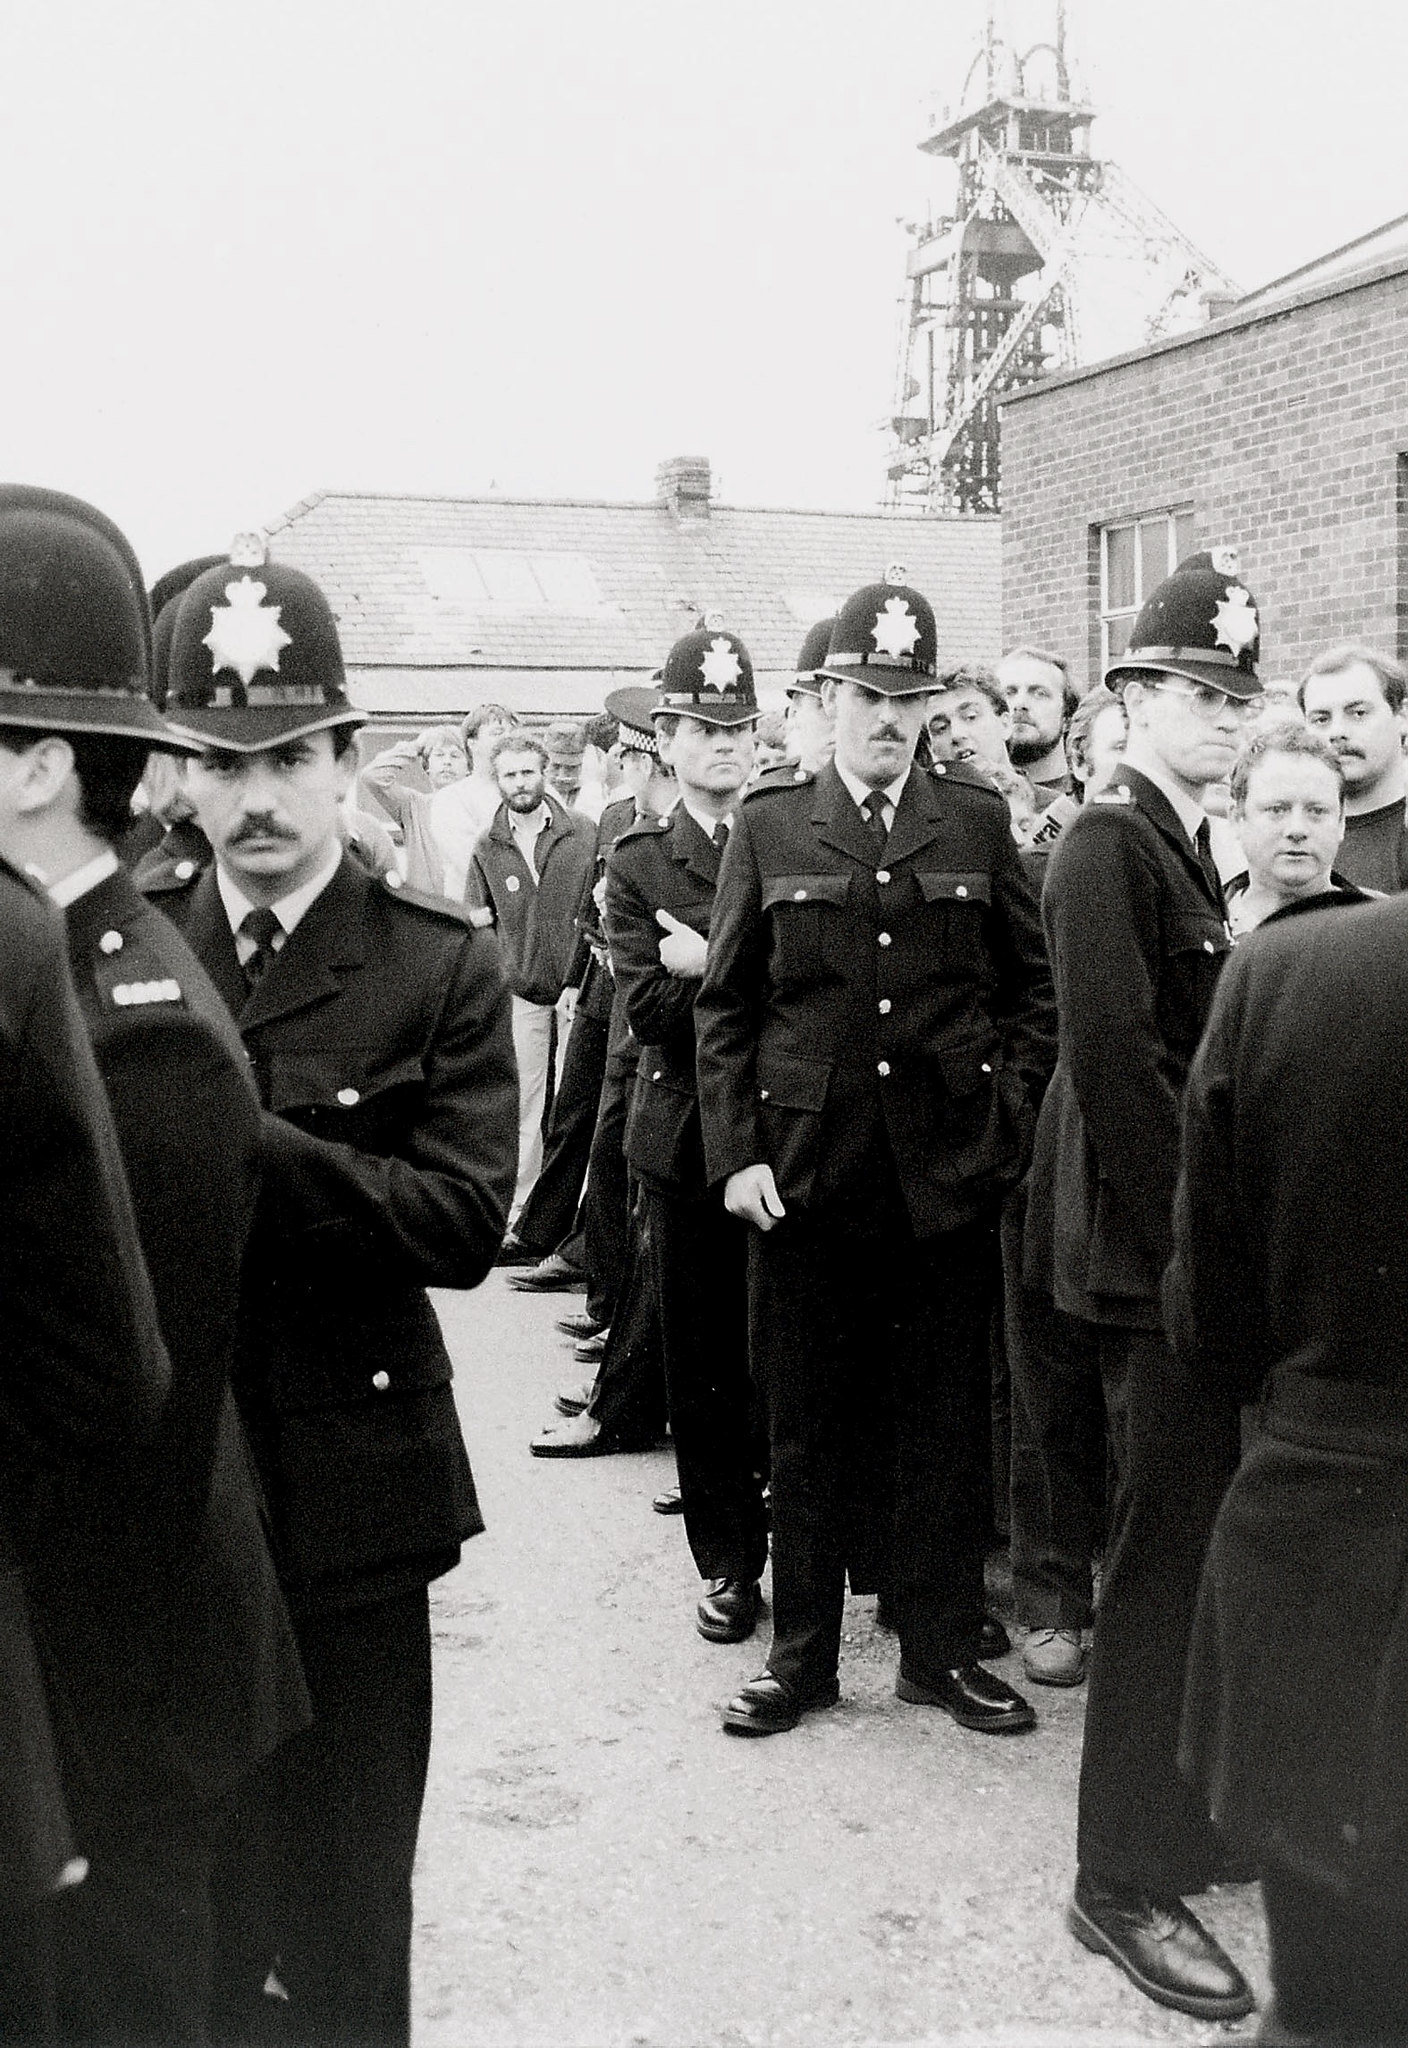 police at Liverpool councillors and police on Miners picket 1984